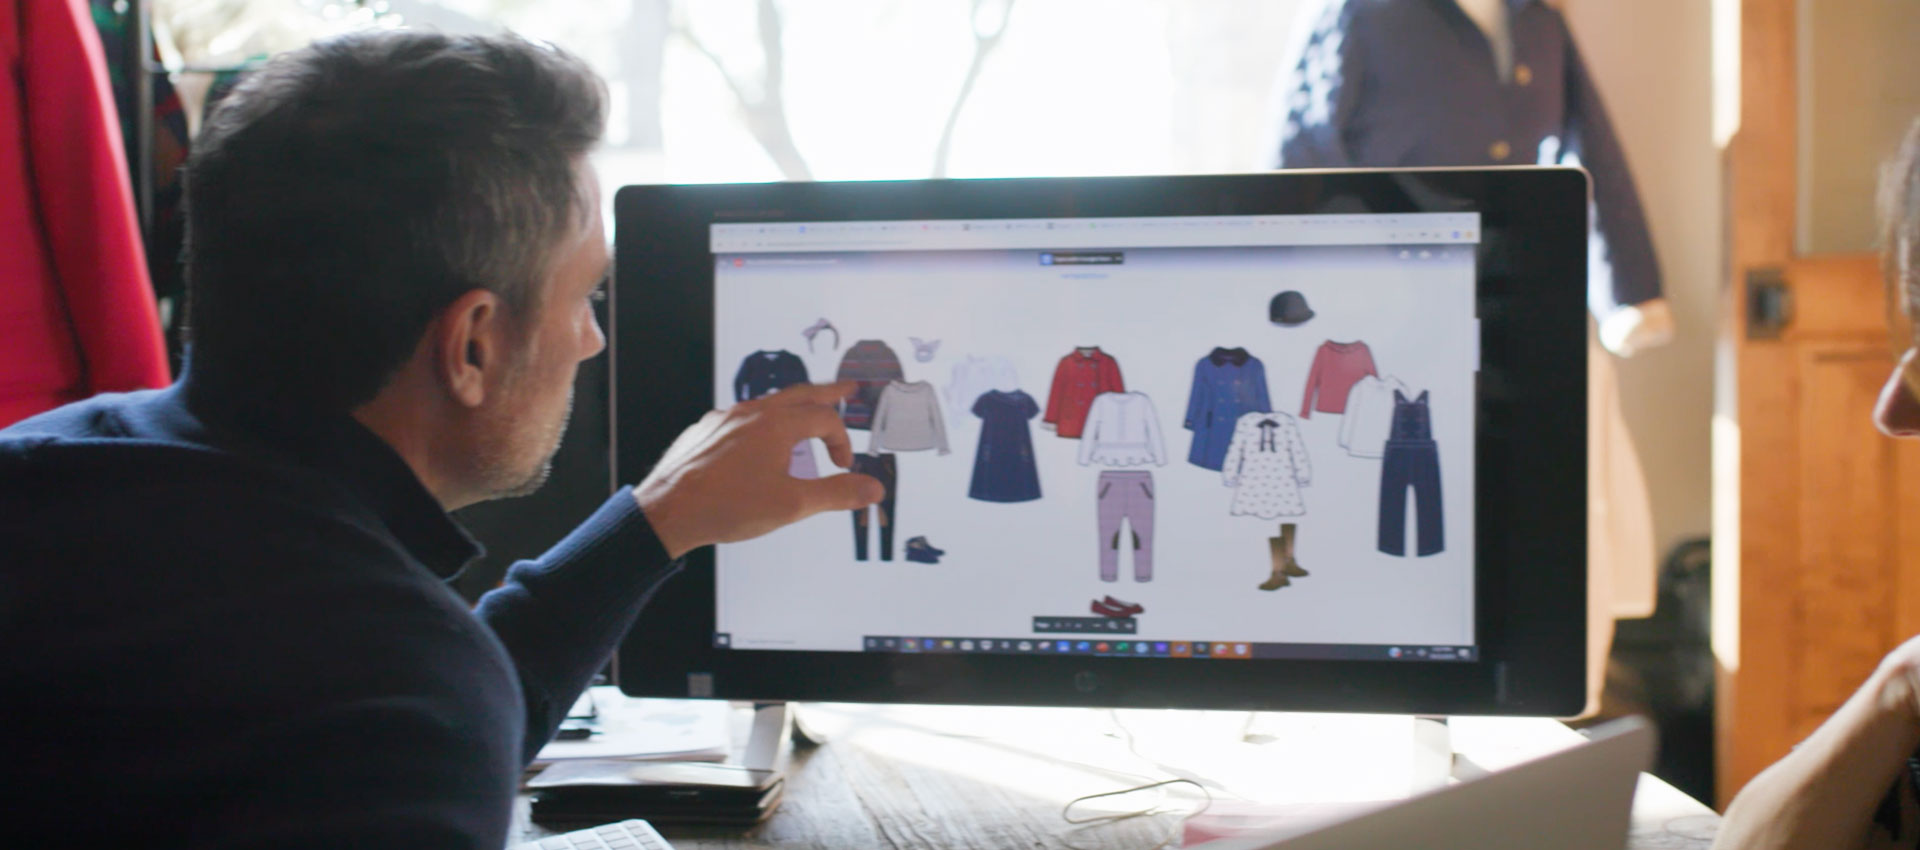 Man looking at fashion clothing designs on a computer